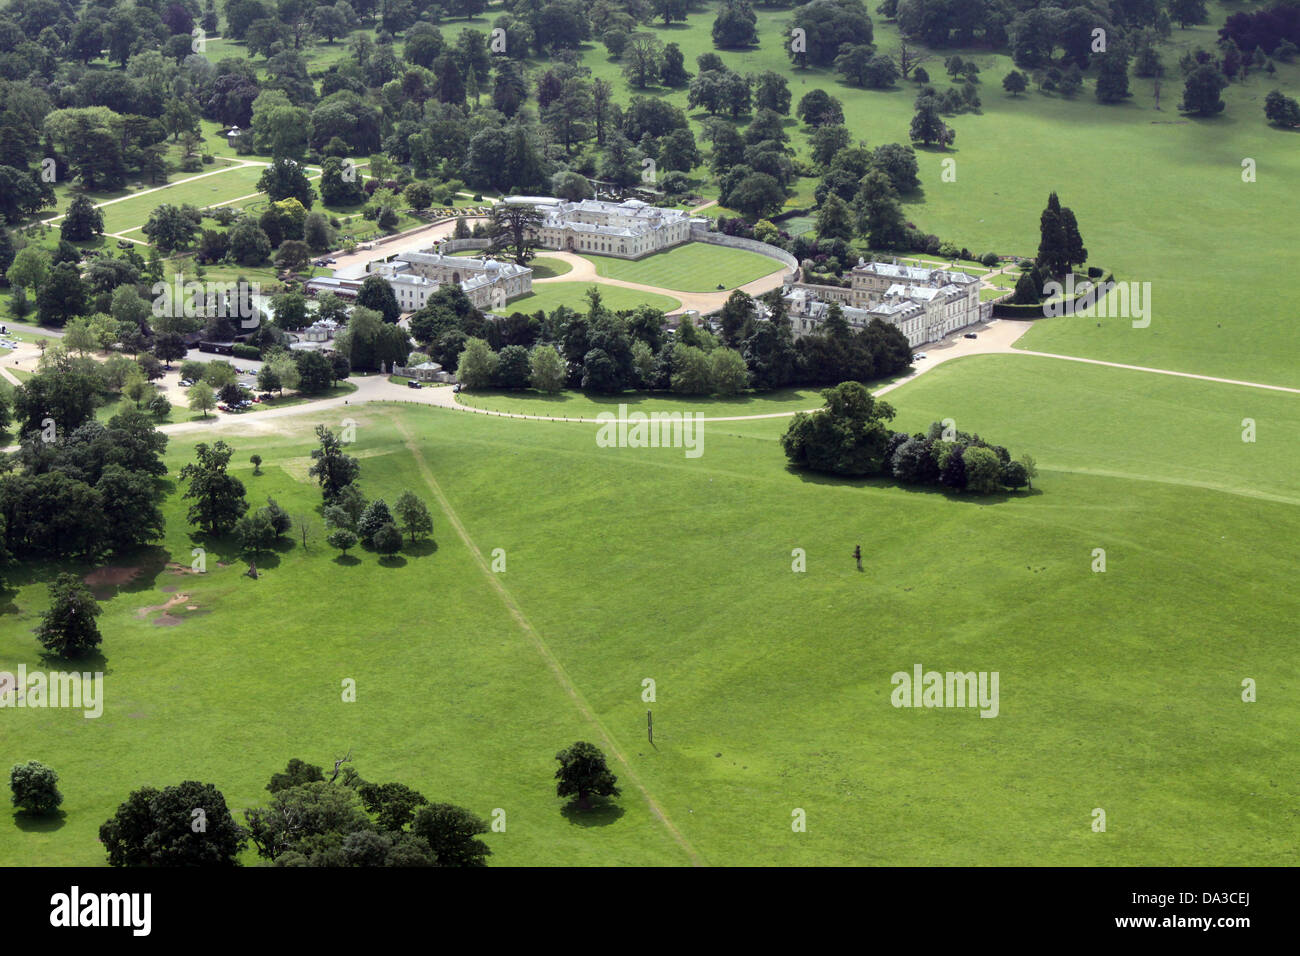 aerial view of Woburn Abbey, home of the Duke of Bedford - Stock Image